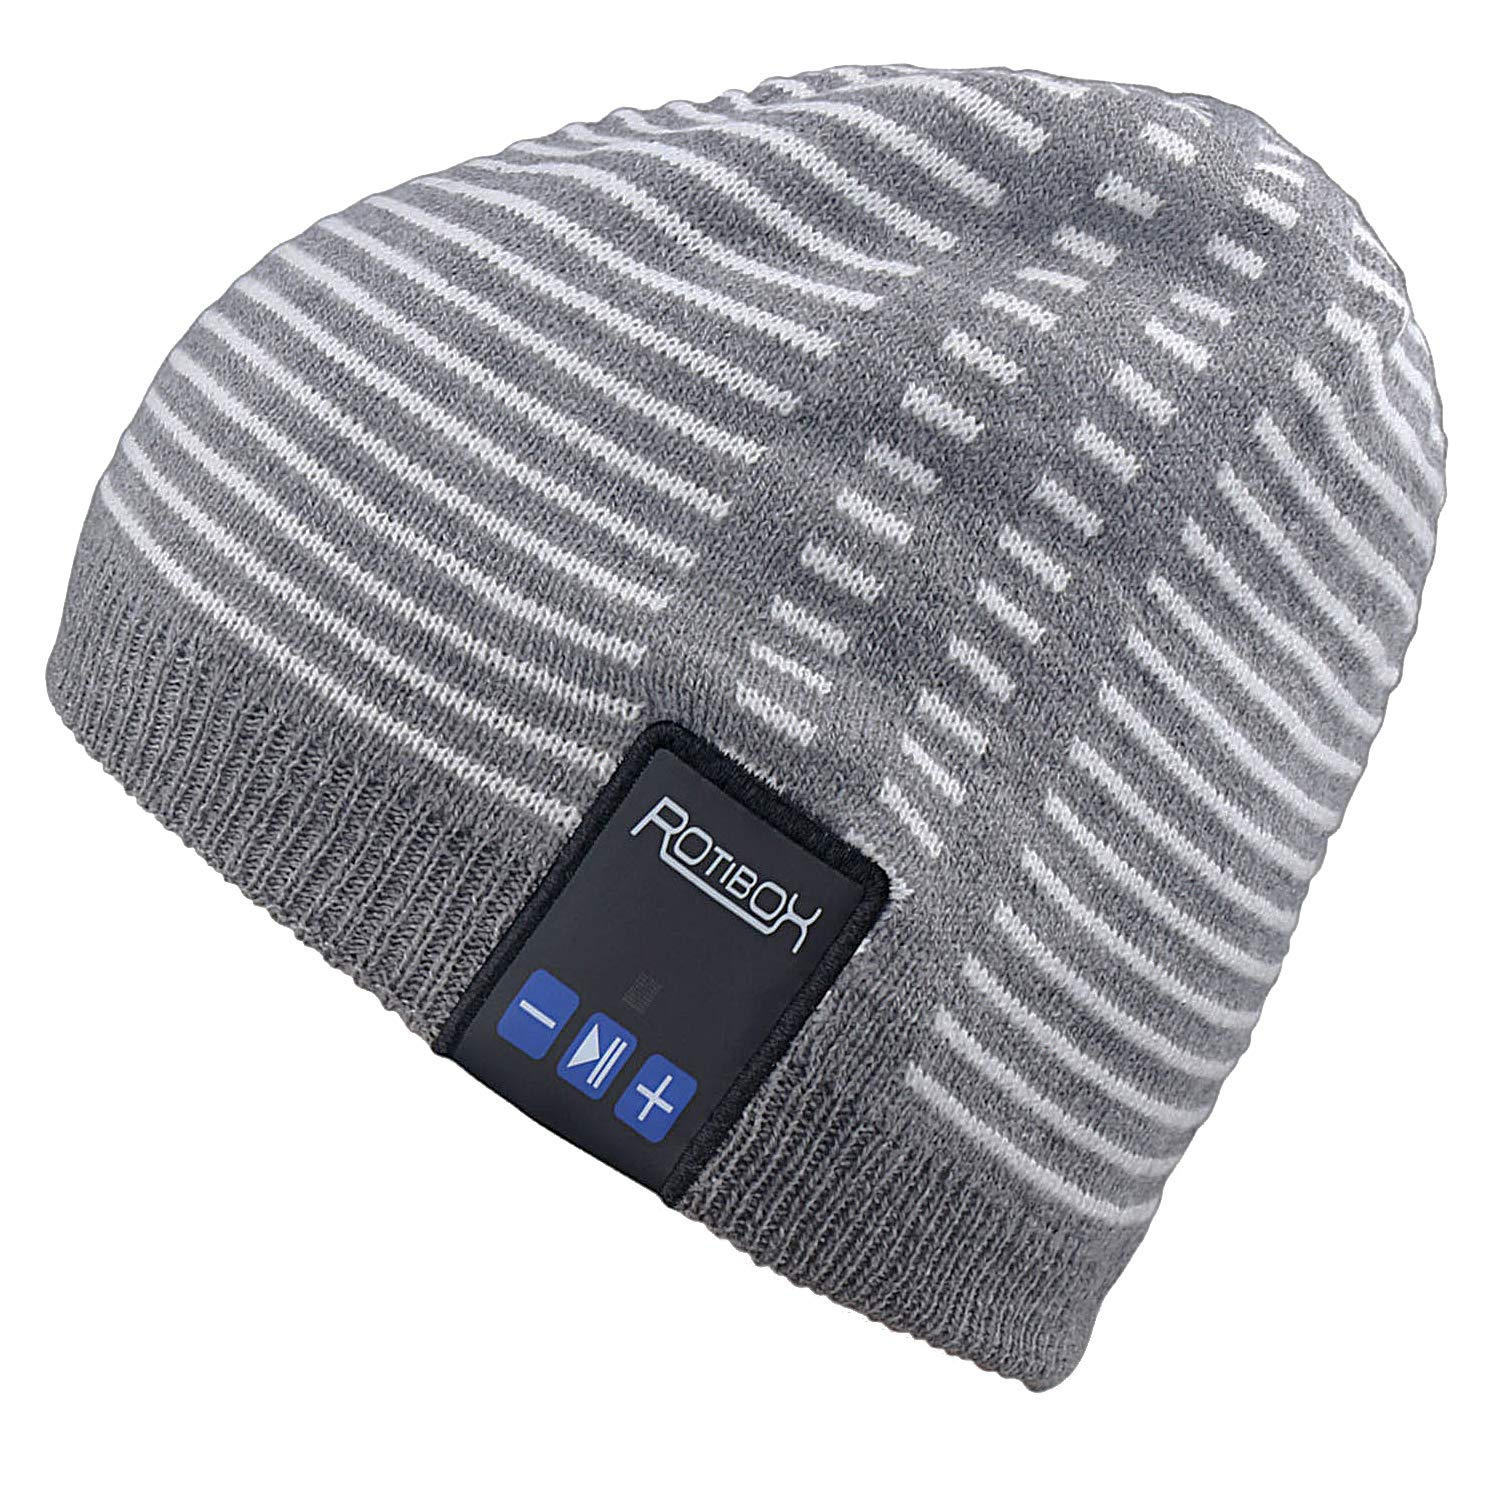 61a15cee827 Mydeal Winter Washable Bluetooth Music Beanie Warm Soft Knitted Trendy  Short Skully Hat Cap w  Wireless Headphone Headset Earphone Mic Hands Free  for ...